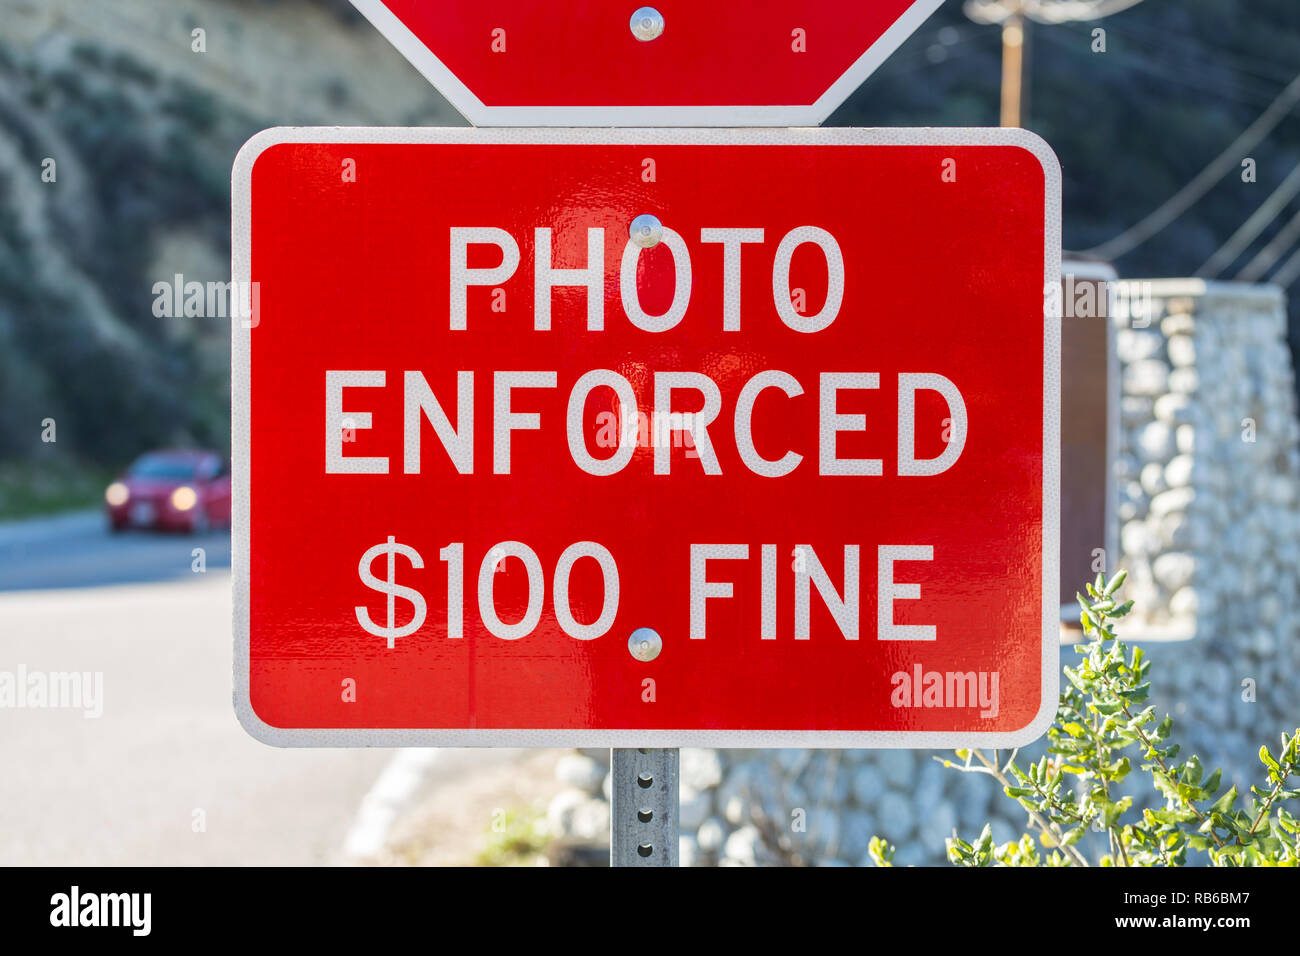 Photo enforced $100 fine stop sign warning notice in Southern California. - Stock Image